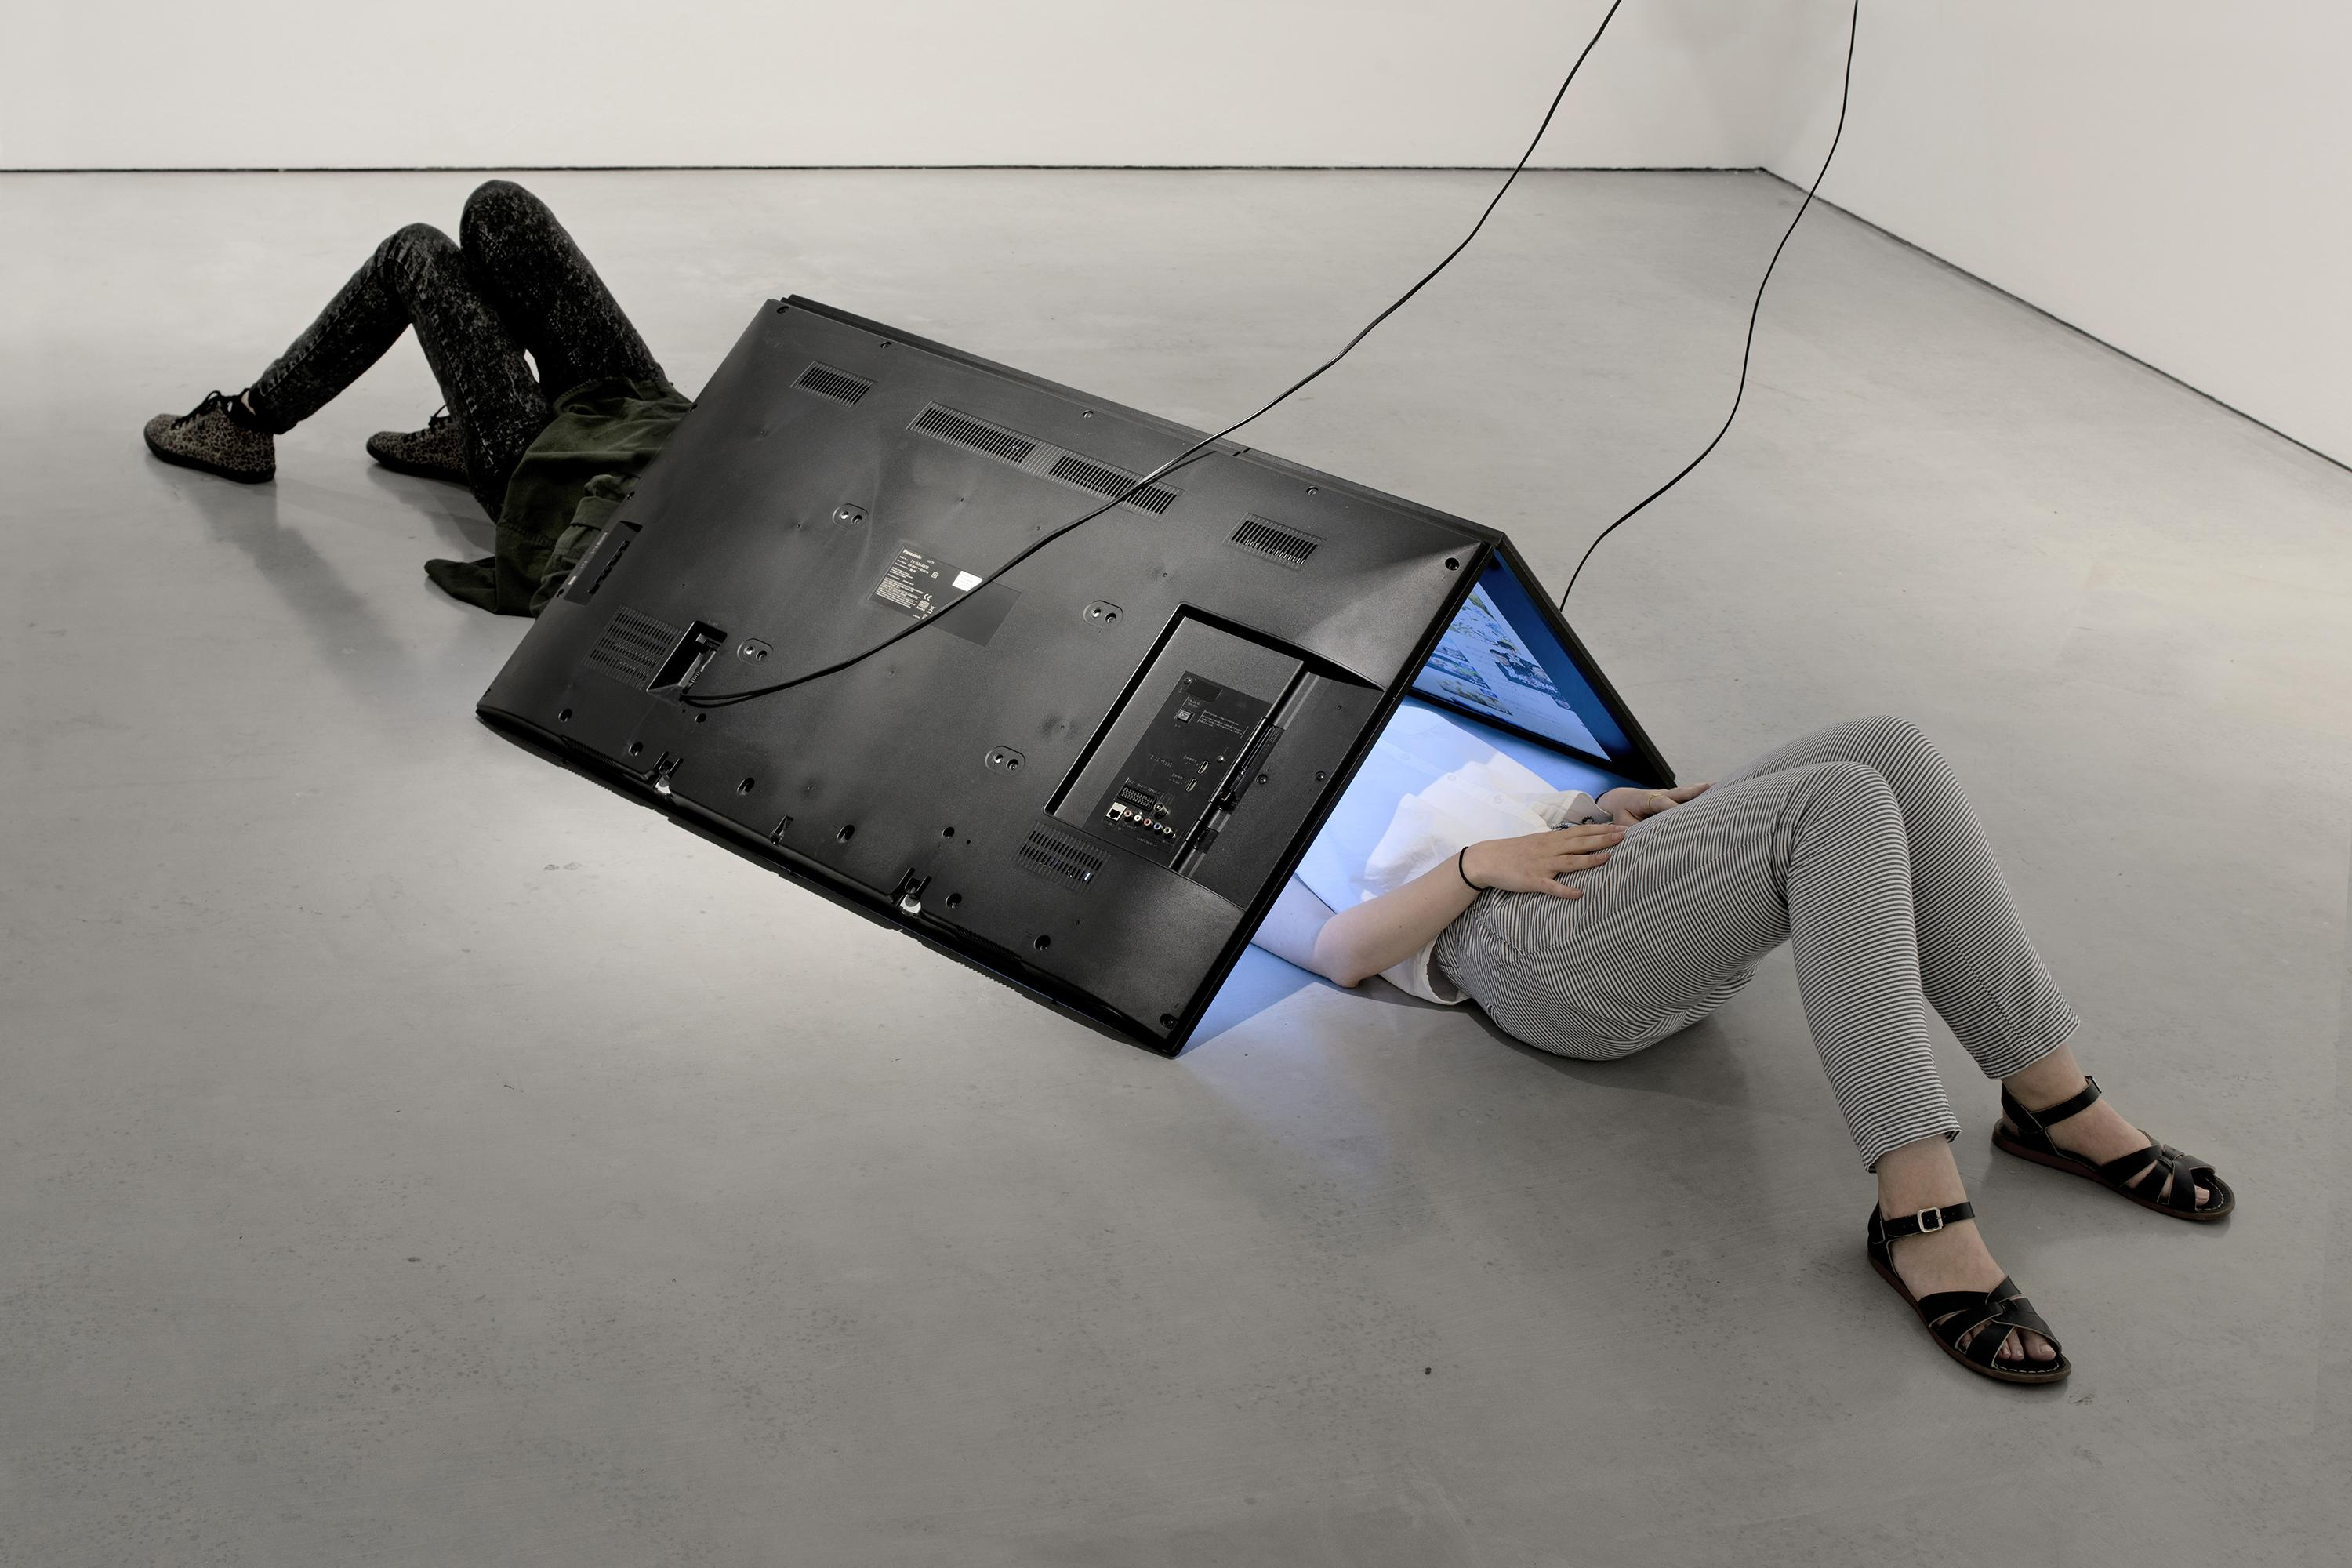 Two people lay on the floor beneath a tent-like structure made from two large digital screens. Their heads are hidden beneath the screens.